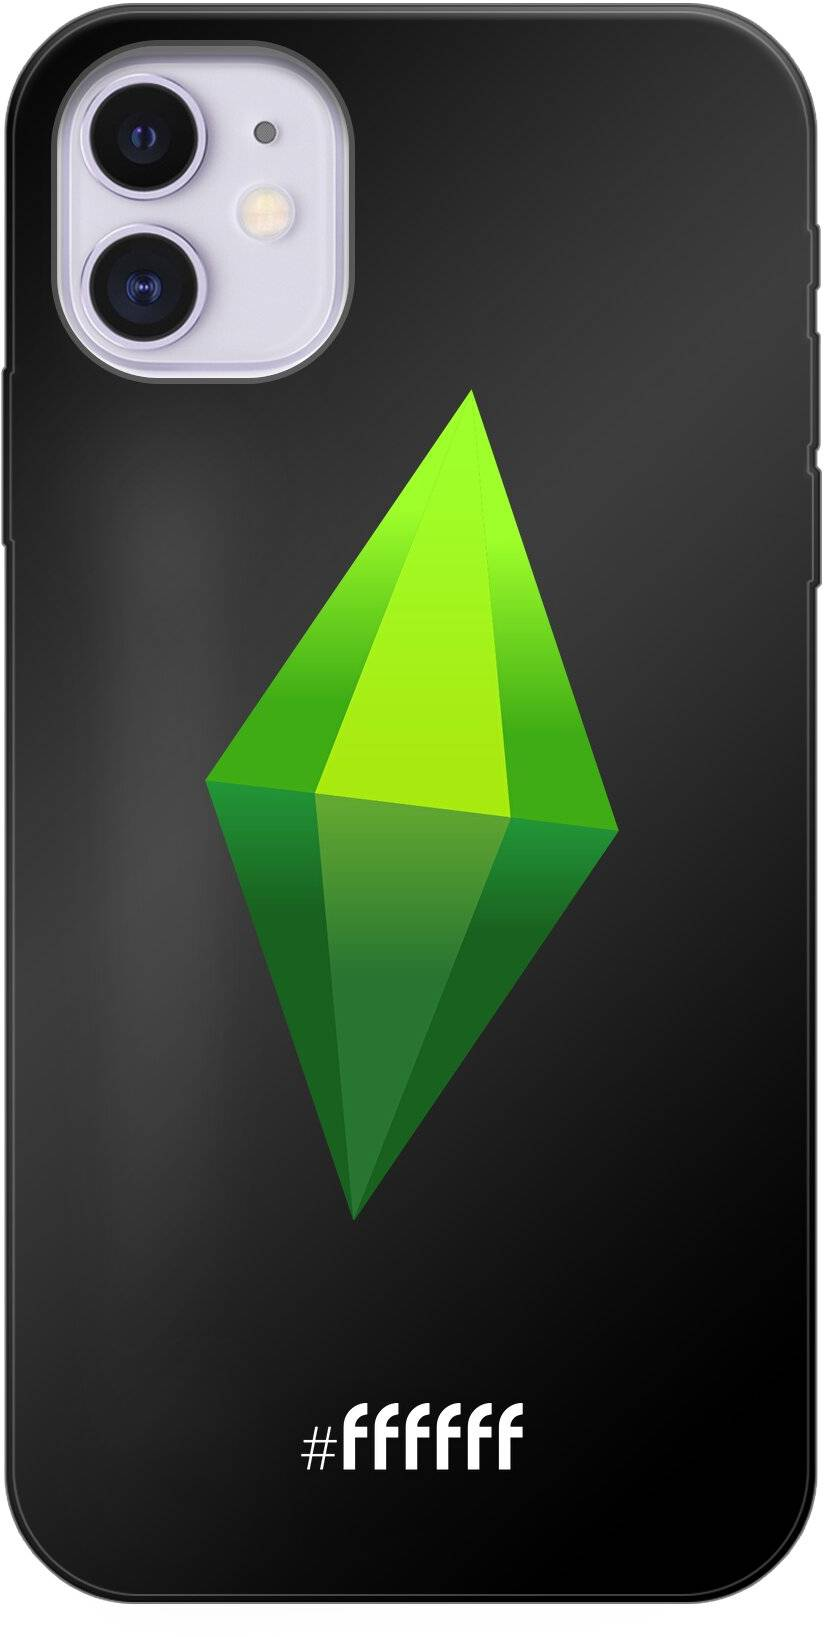 The Sims iPhone 11